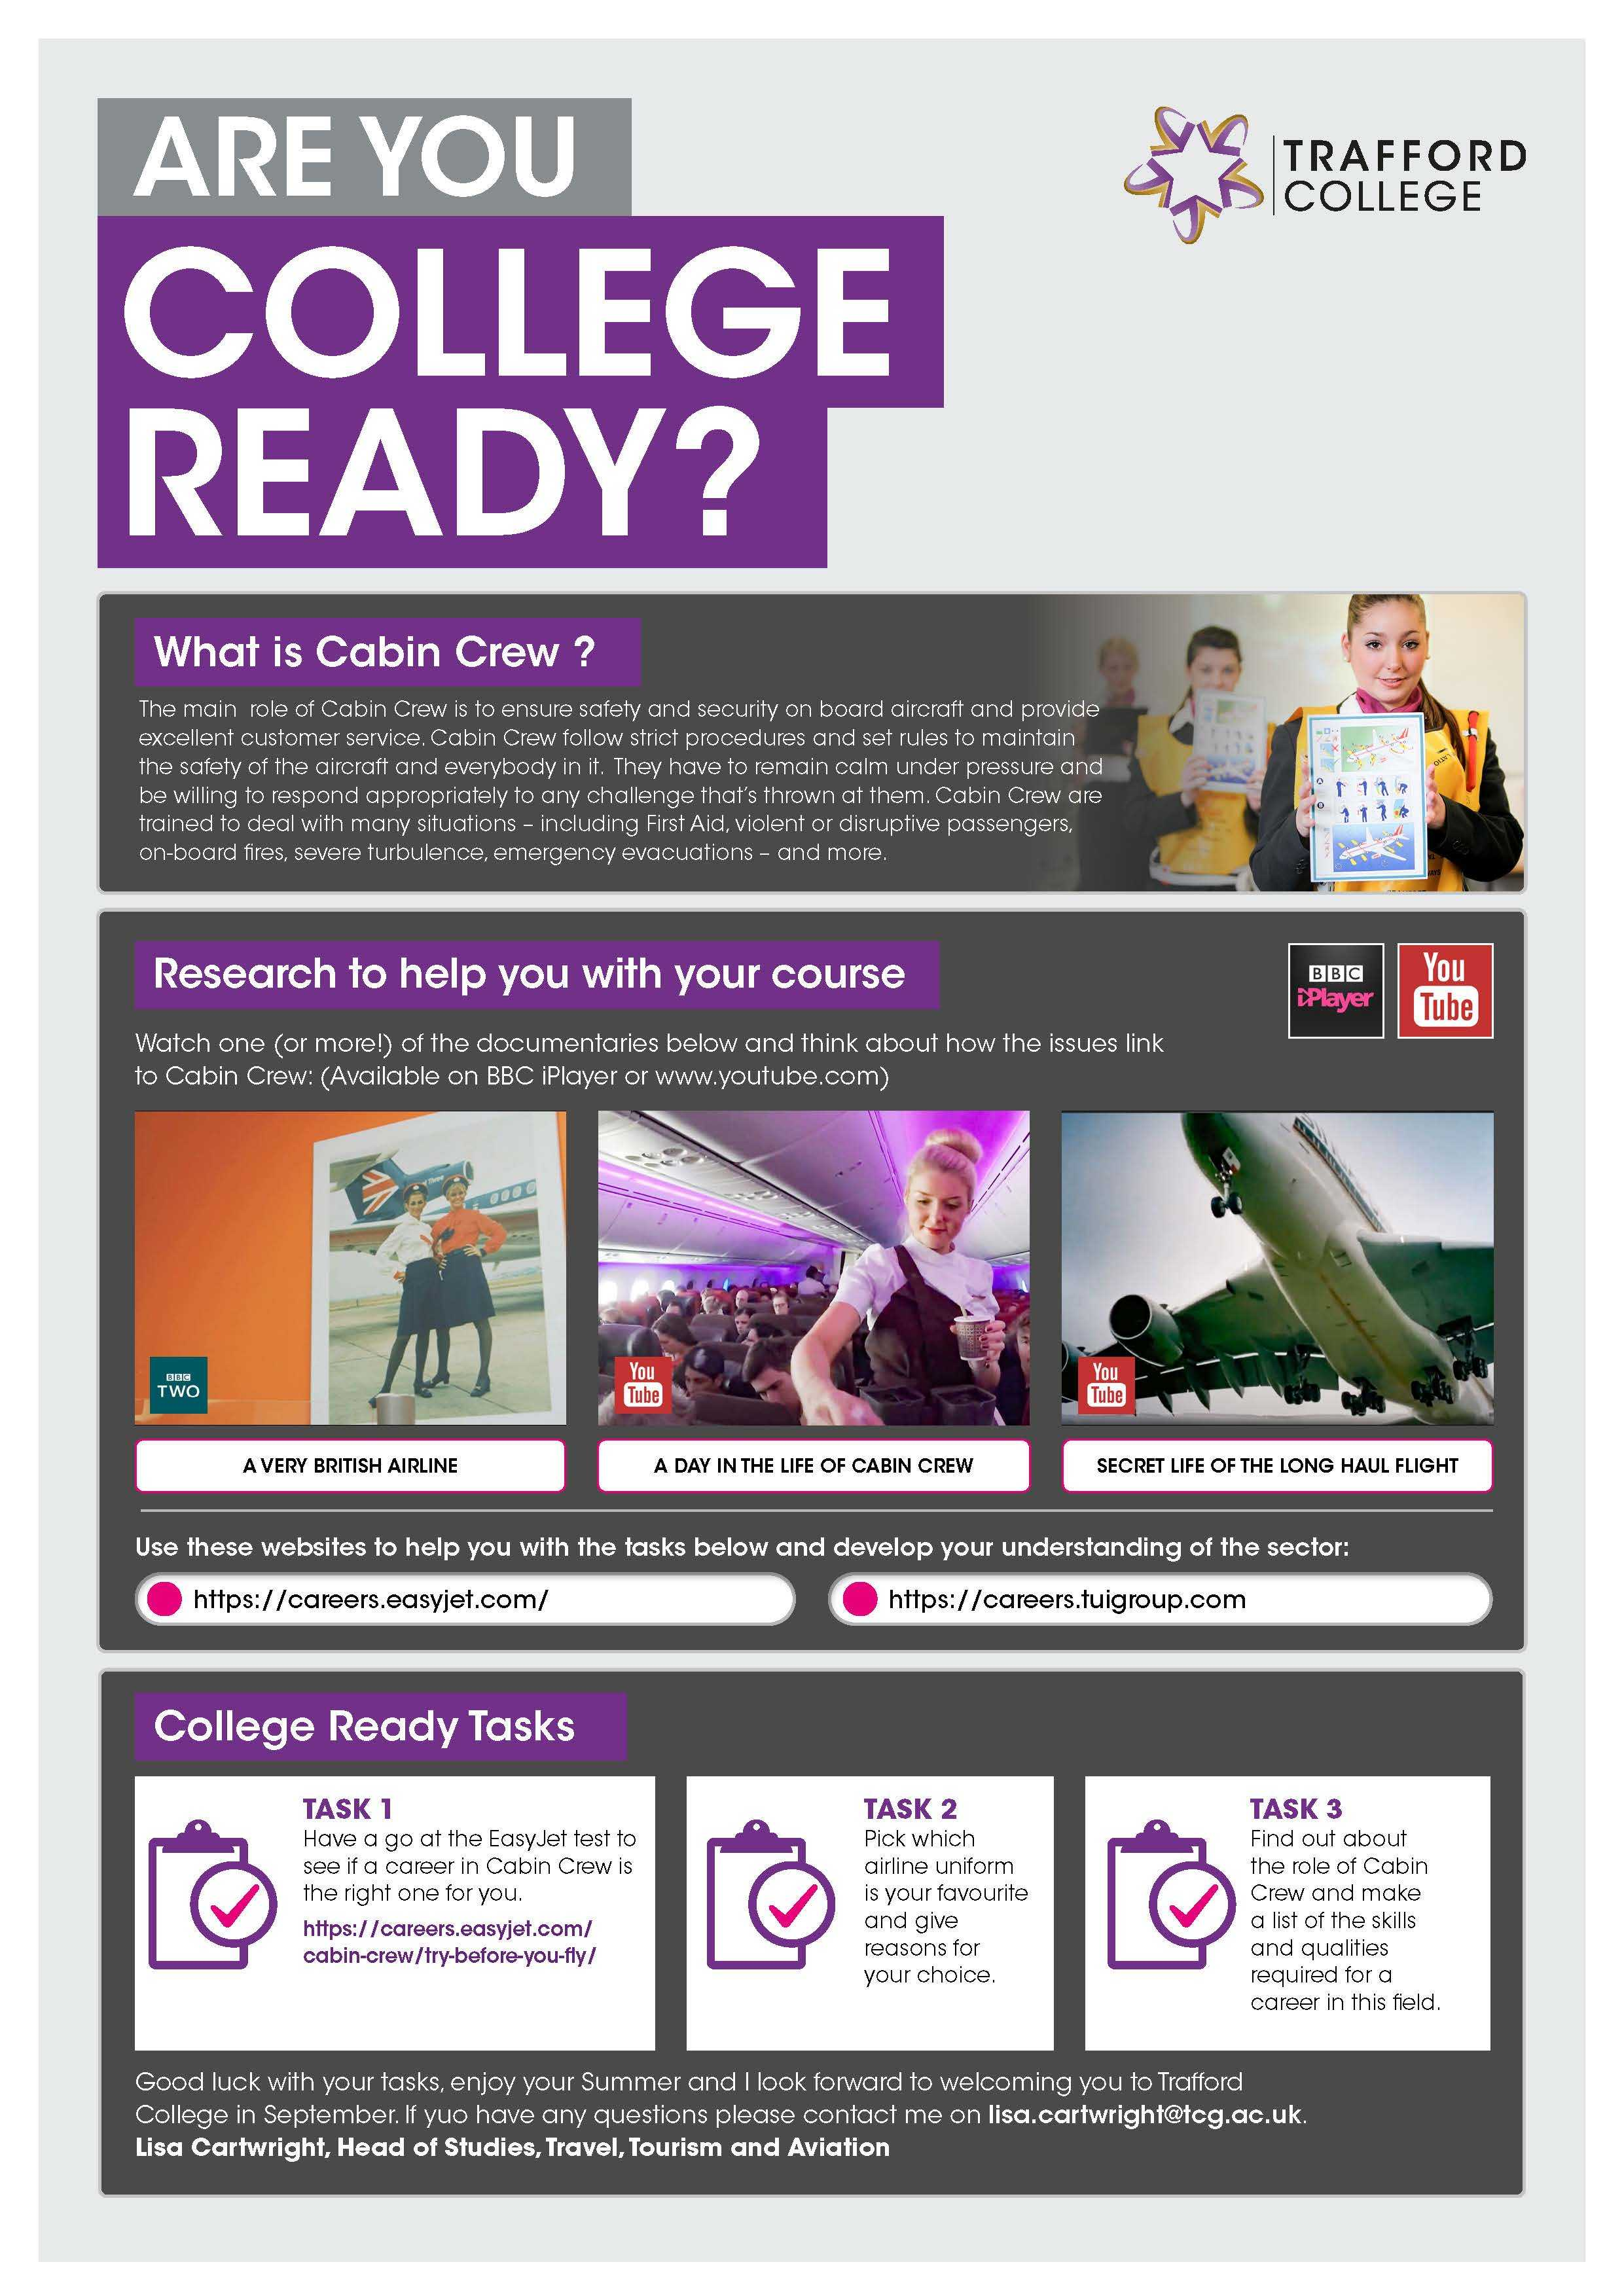 Are You College Ready Transition Leaflet Cabin Crew TRAFFORD Jun20